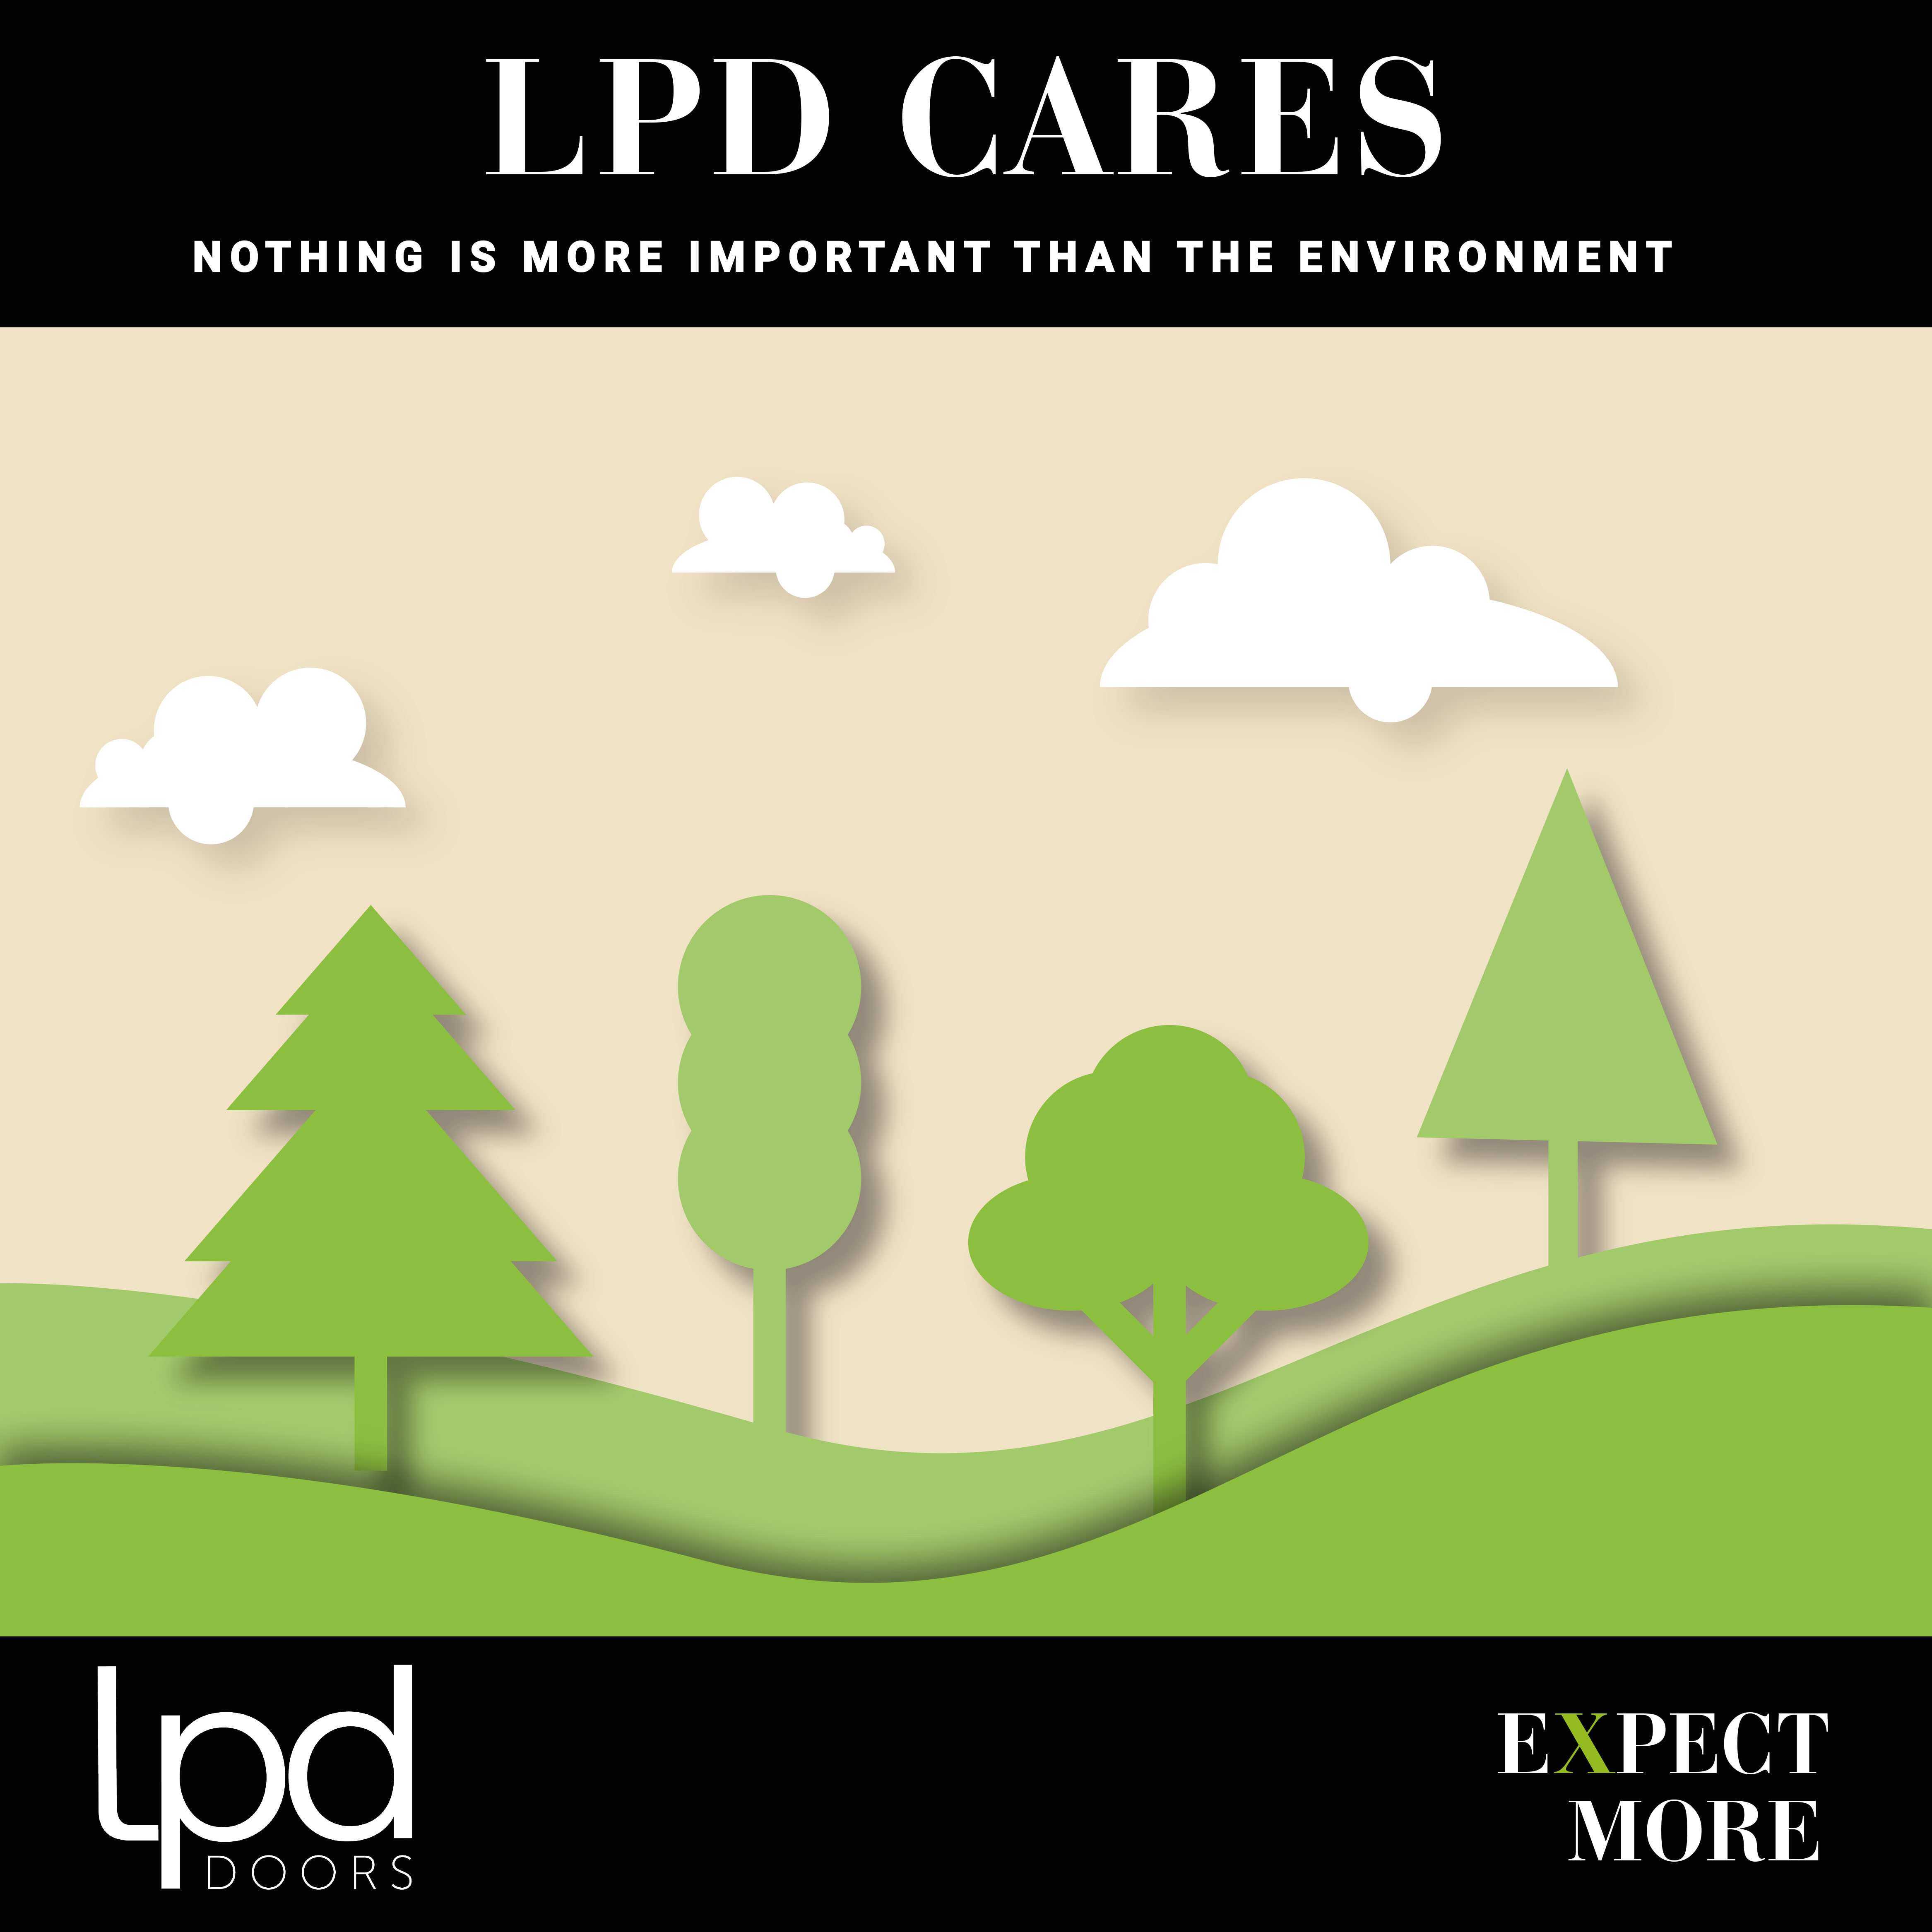 LPD and the environment-LPD Cares